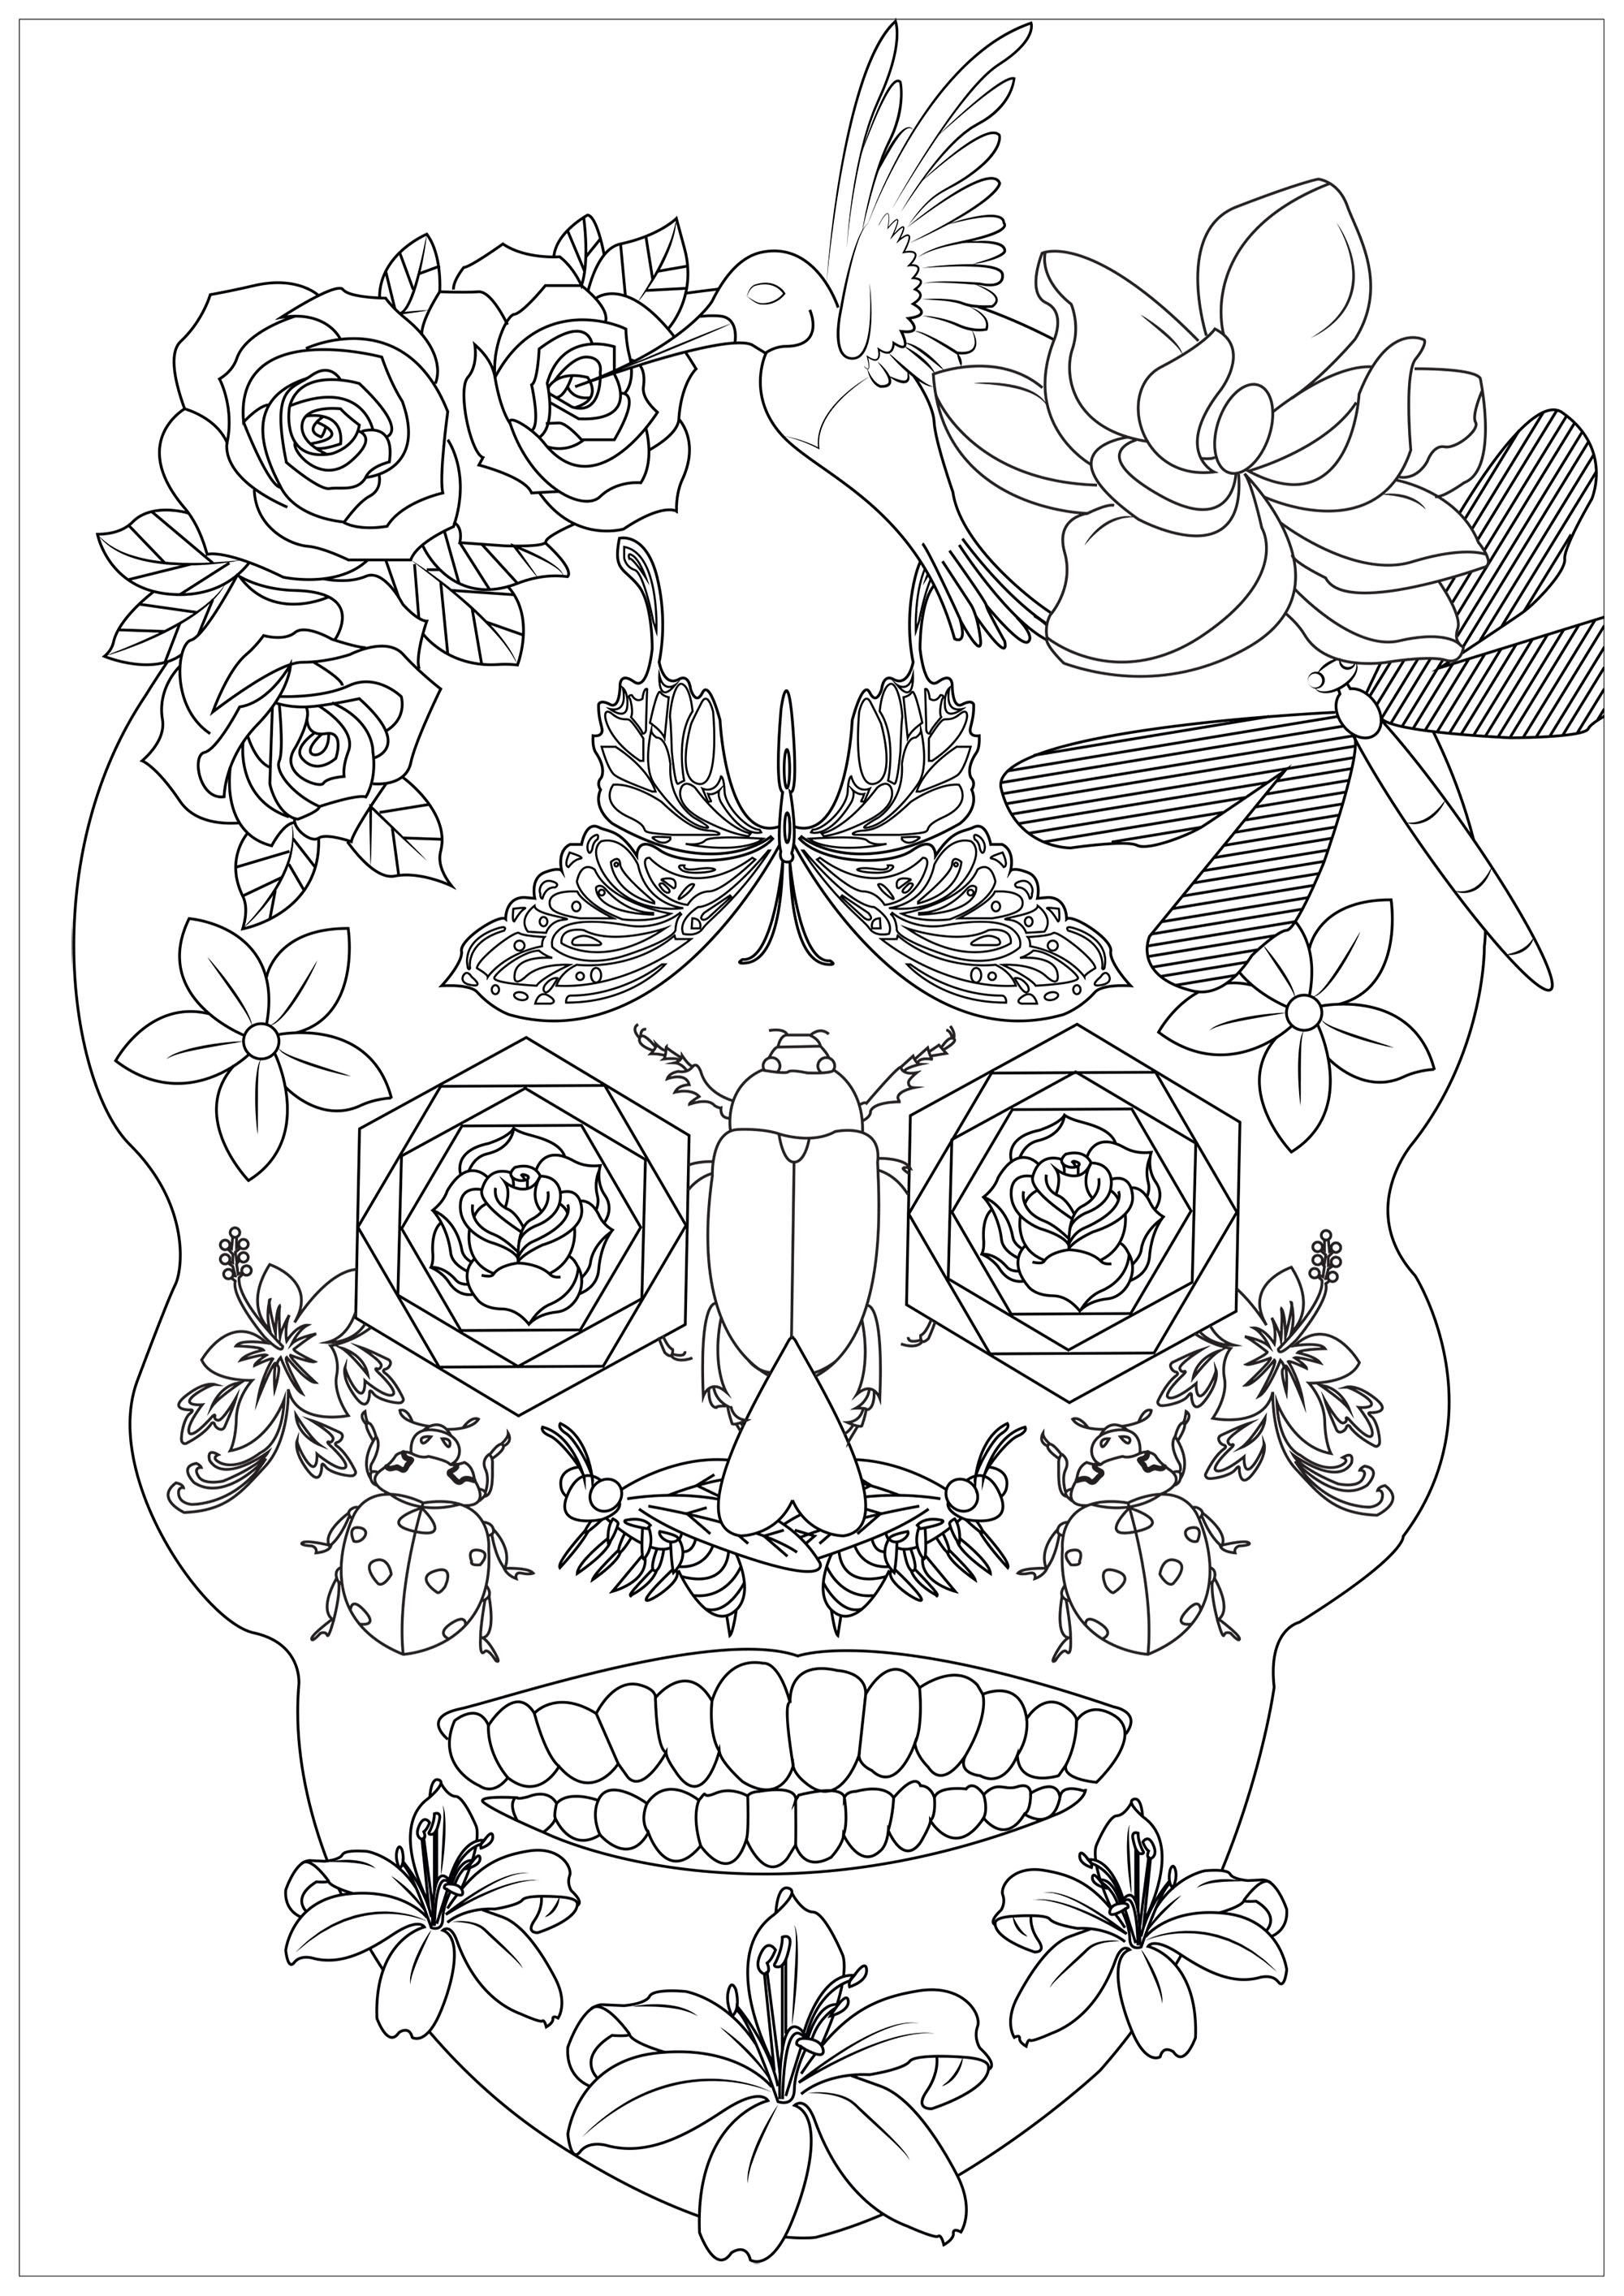 Savage Skull With Insects El Dia De Los Muertos Adult Coloring Pages